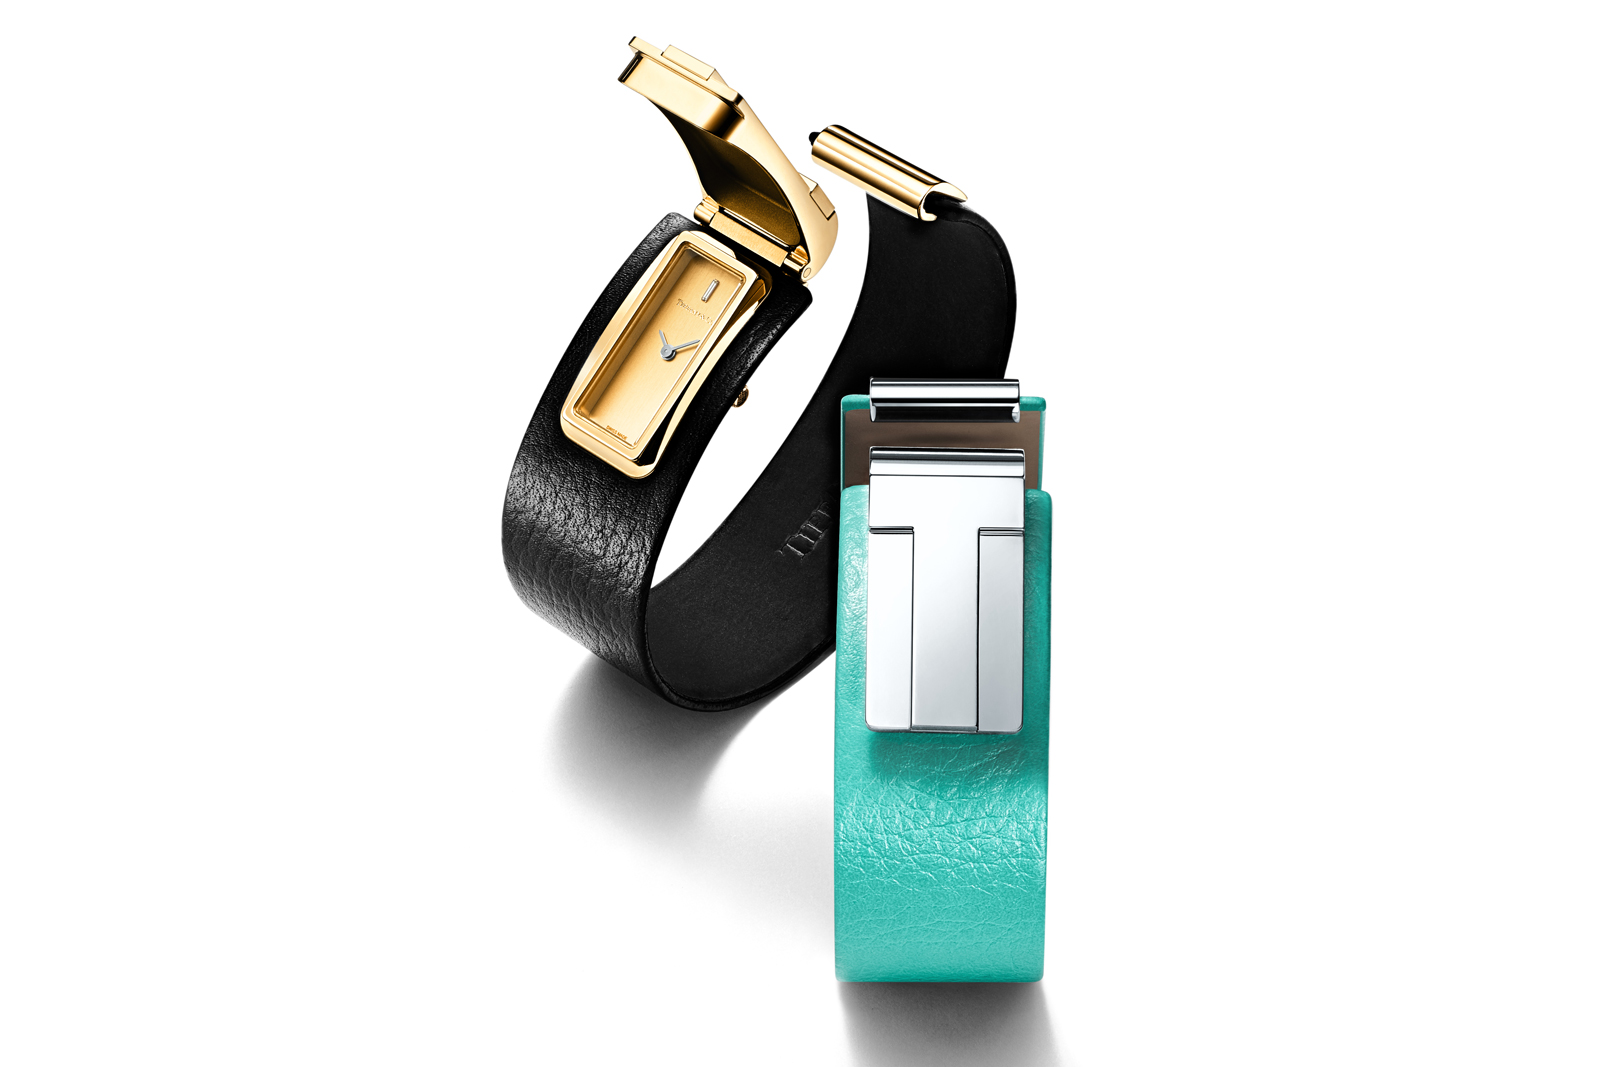 Tiffany & Co. 'Tiffany T' cuff watches in yellow gold and silver